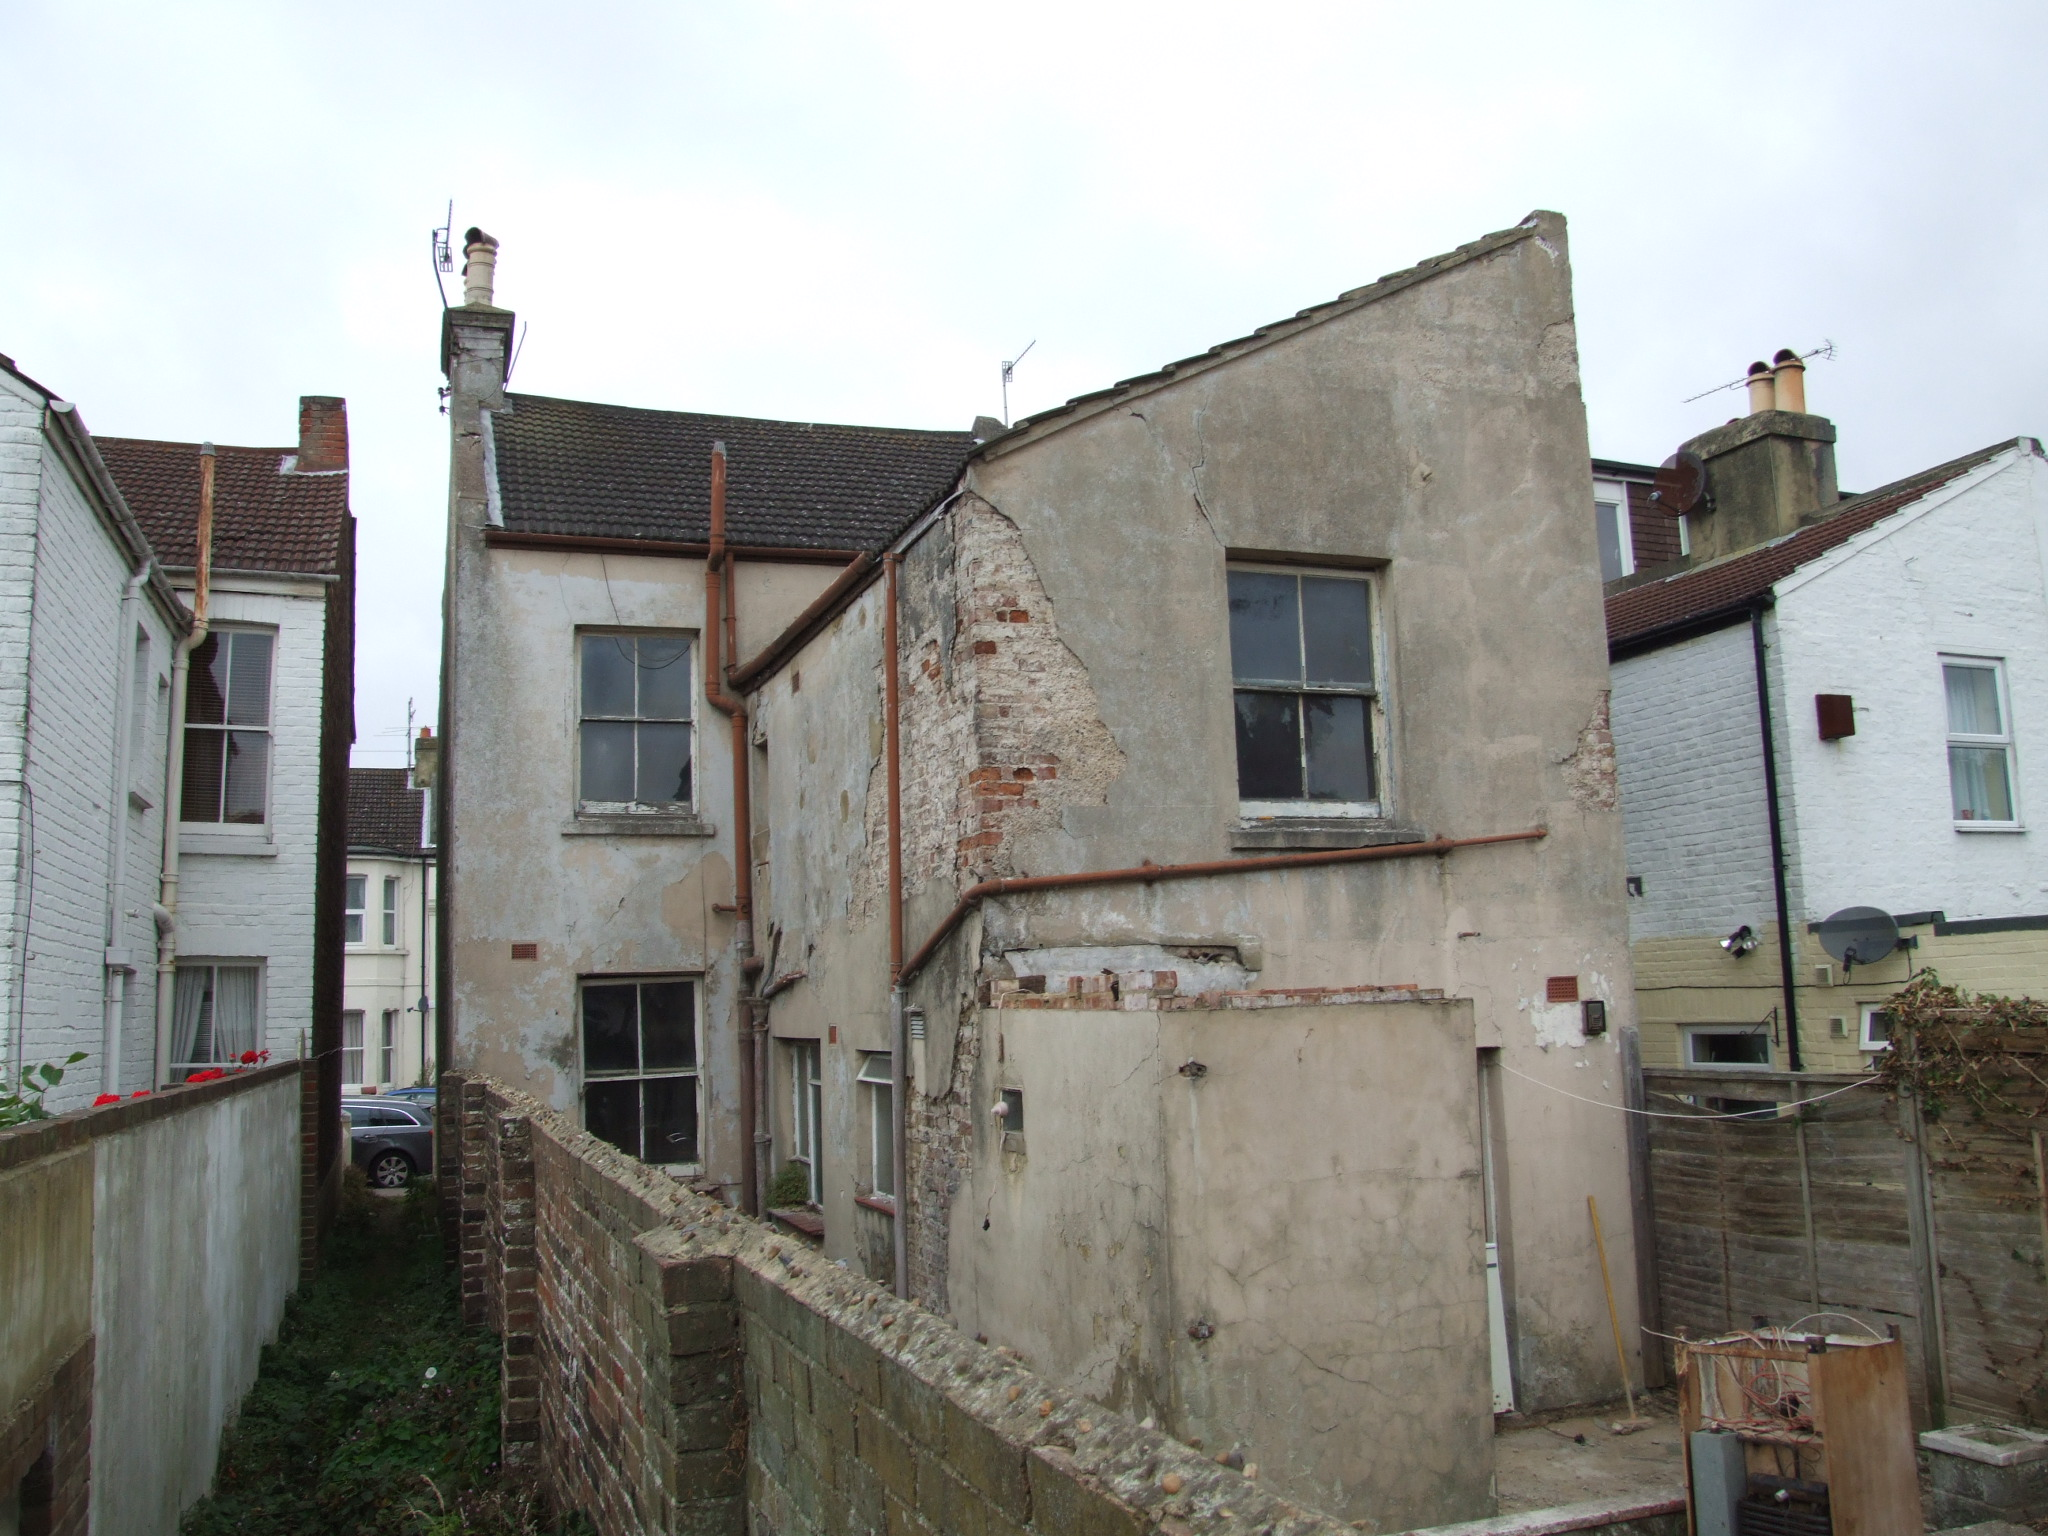 The rear of a completely renovated detached house before any work took place